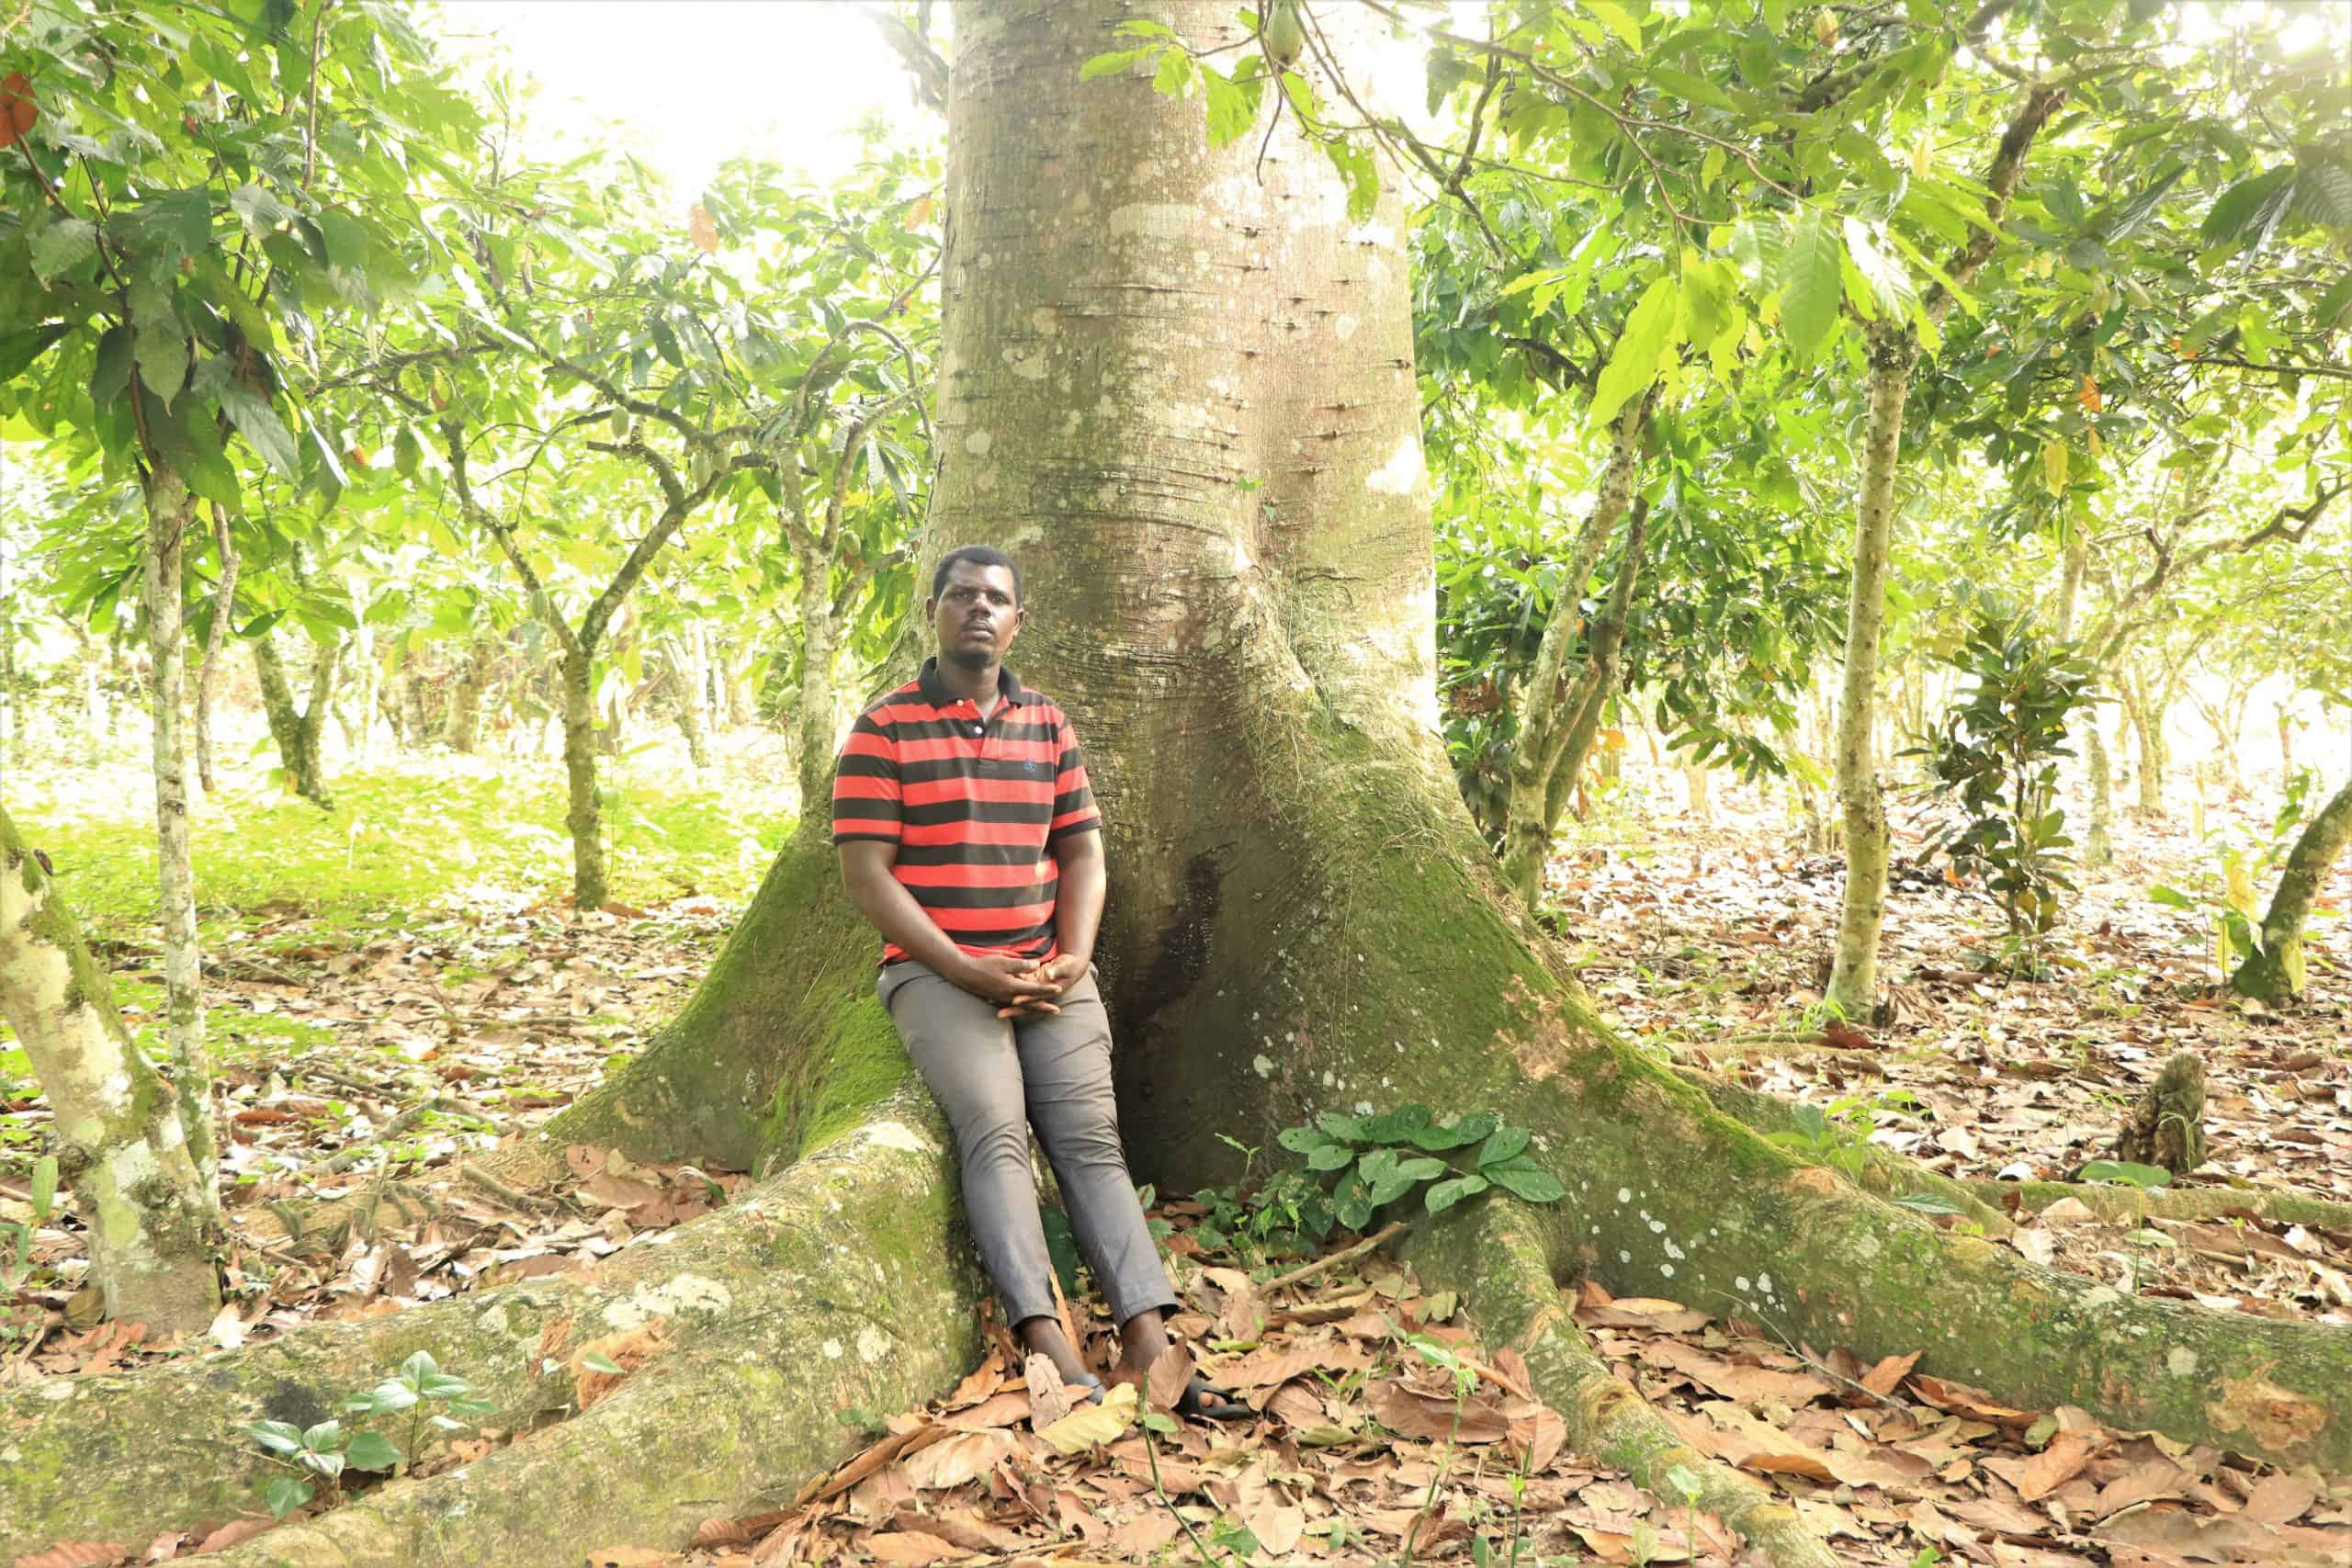 Sustainable cocoa farmer Isaac Boafo stands by tree on sustainable cocoa farm